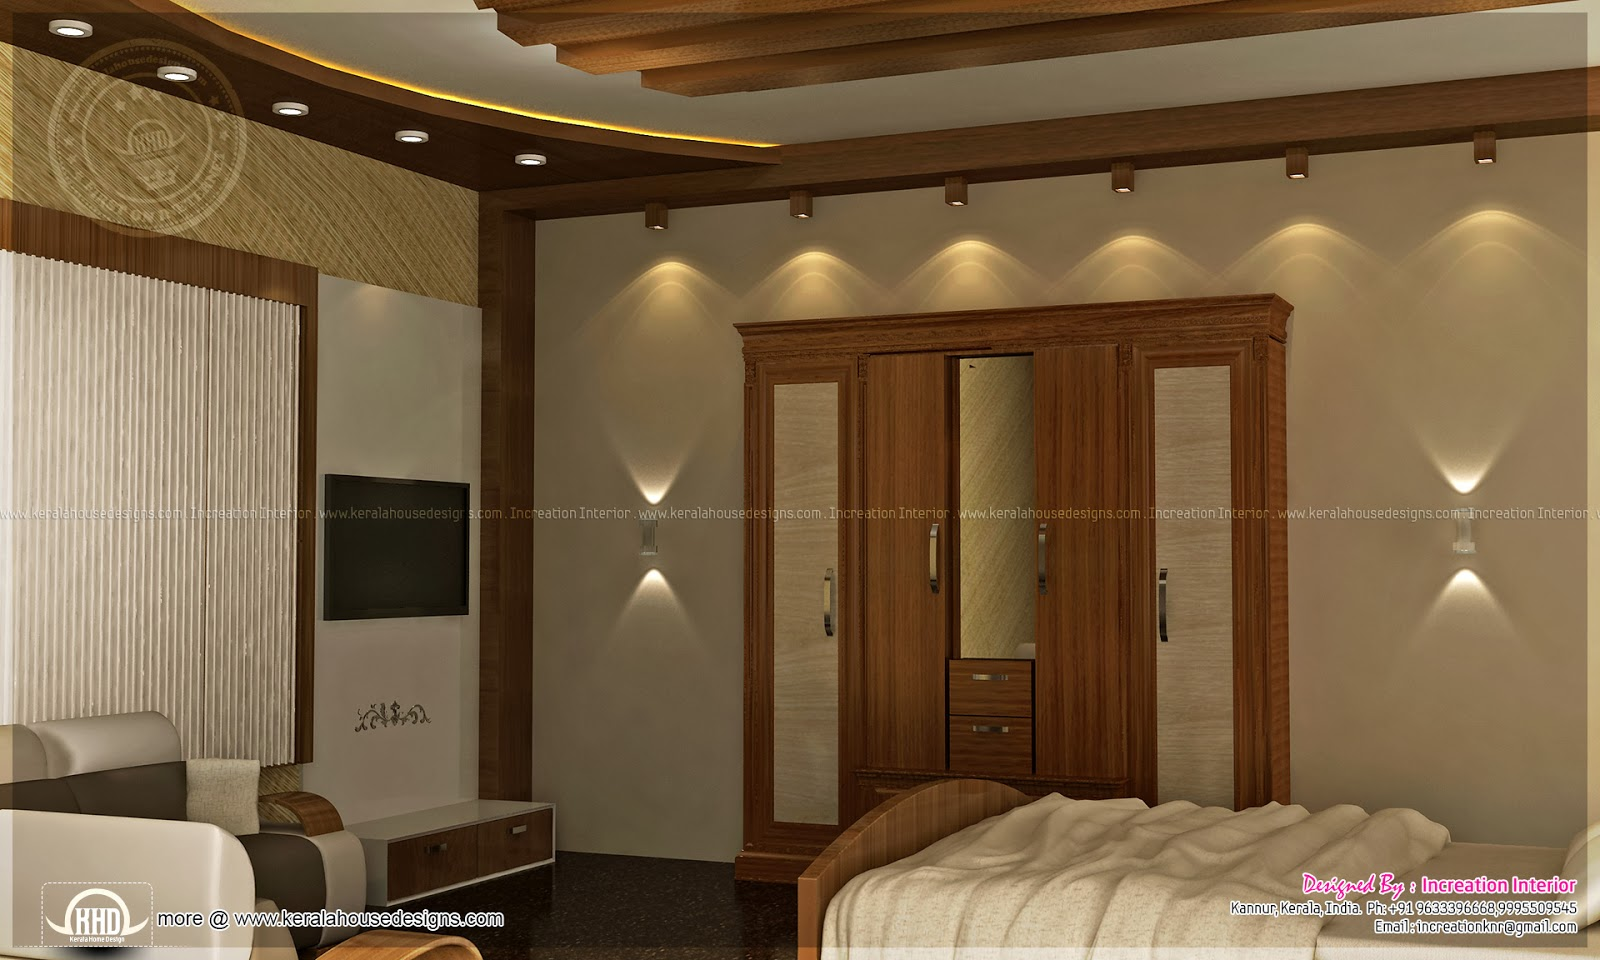 Bedroom interior designs kerala home design and floor plans for Kerala home interior